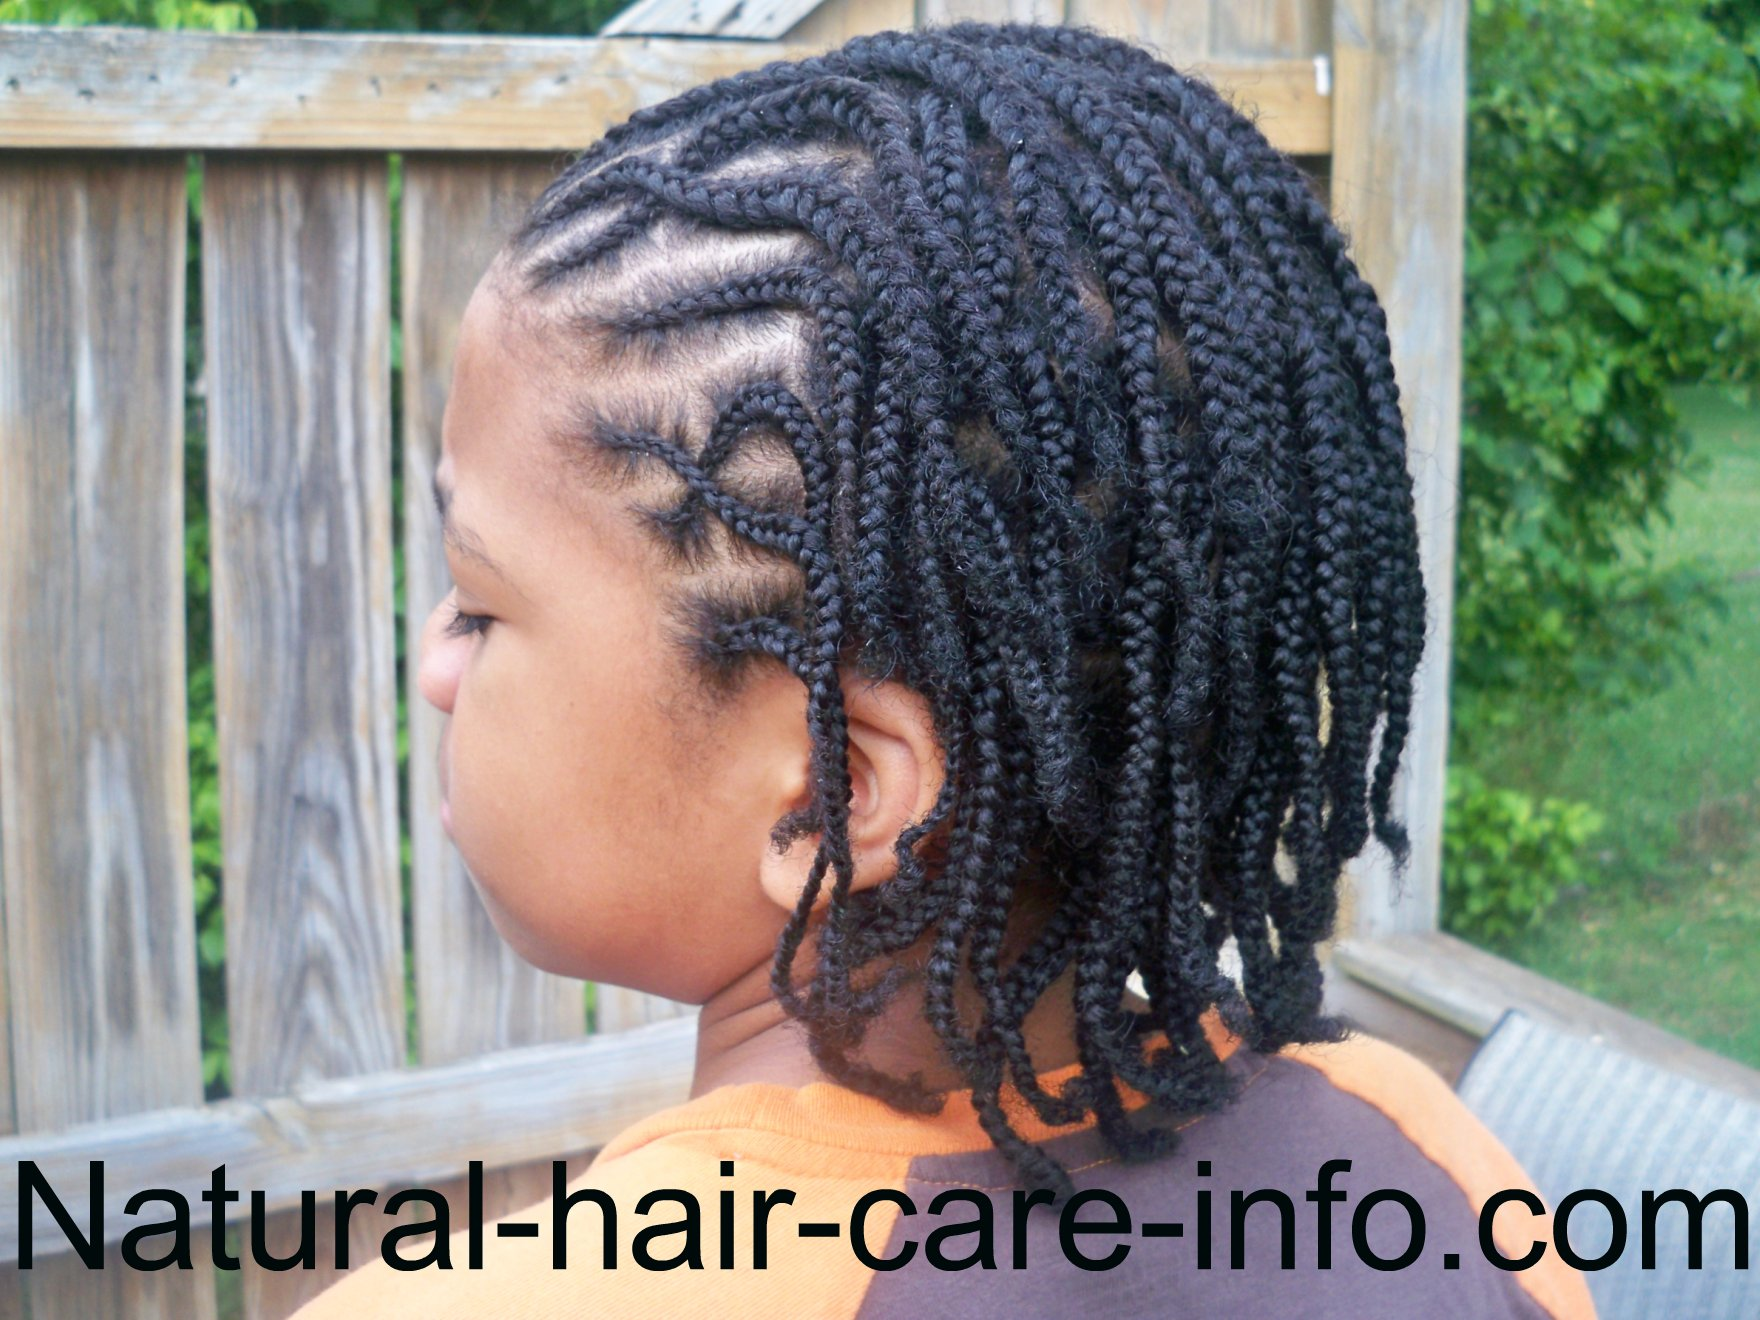 Prime Braid Hairstyles For Men Complete List And Tutorials Hairstyles For Men Maxibearus